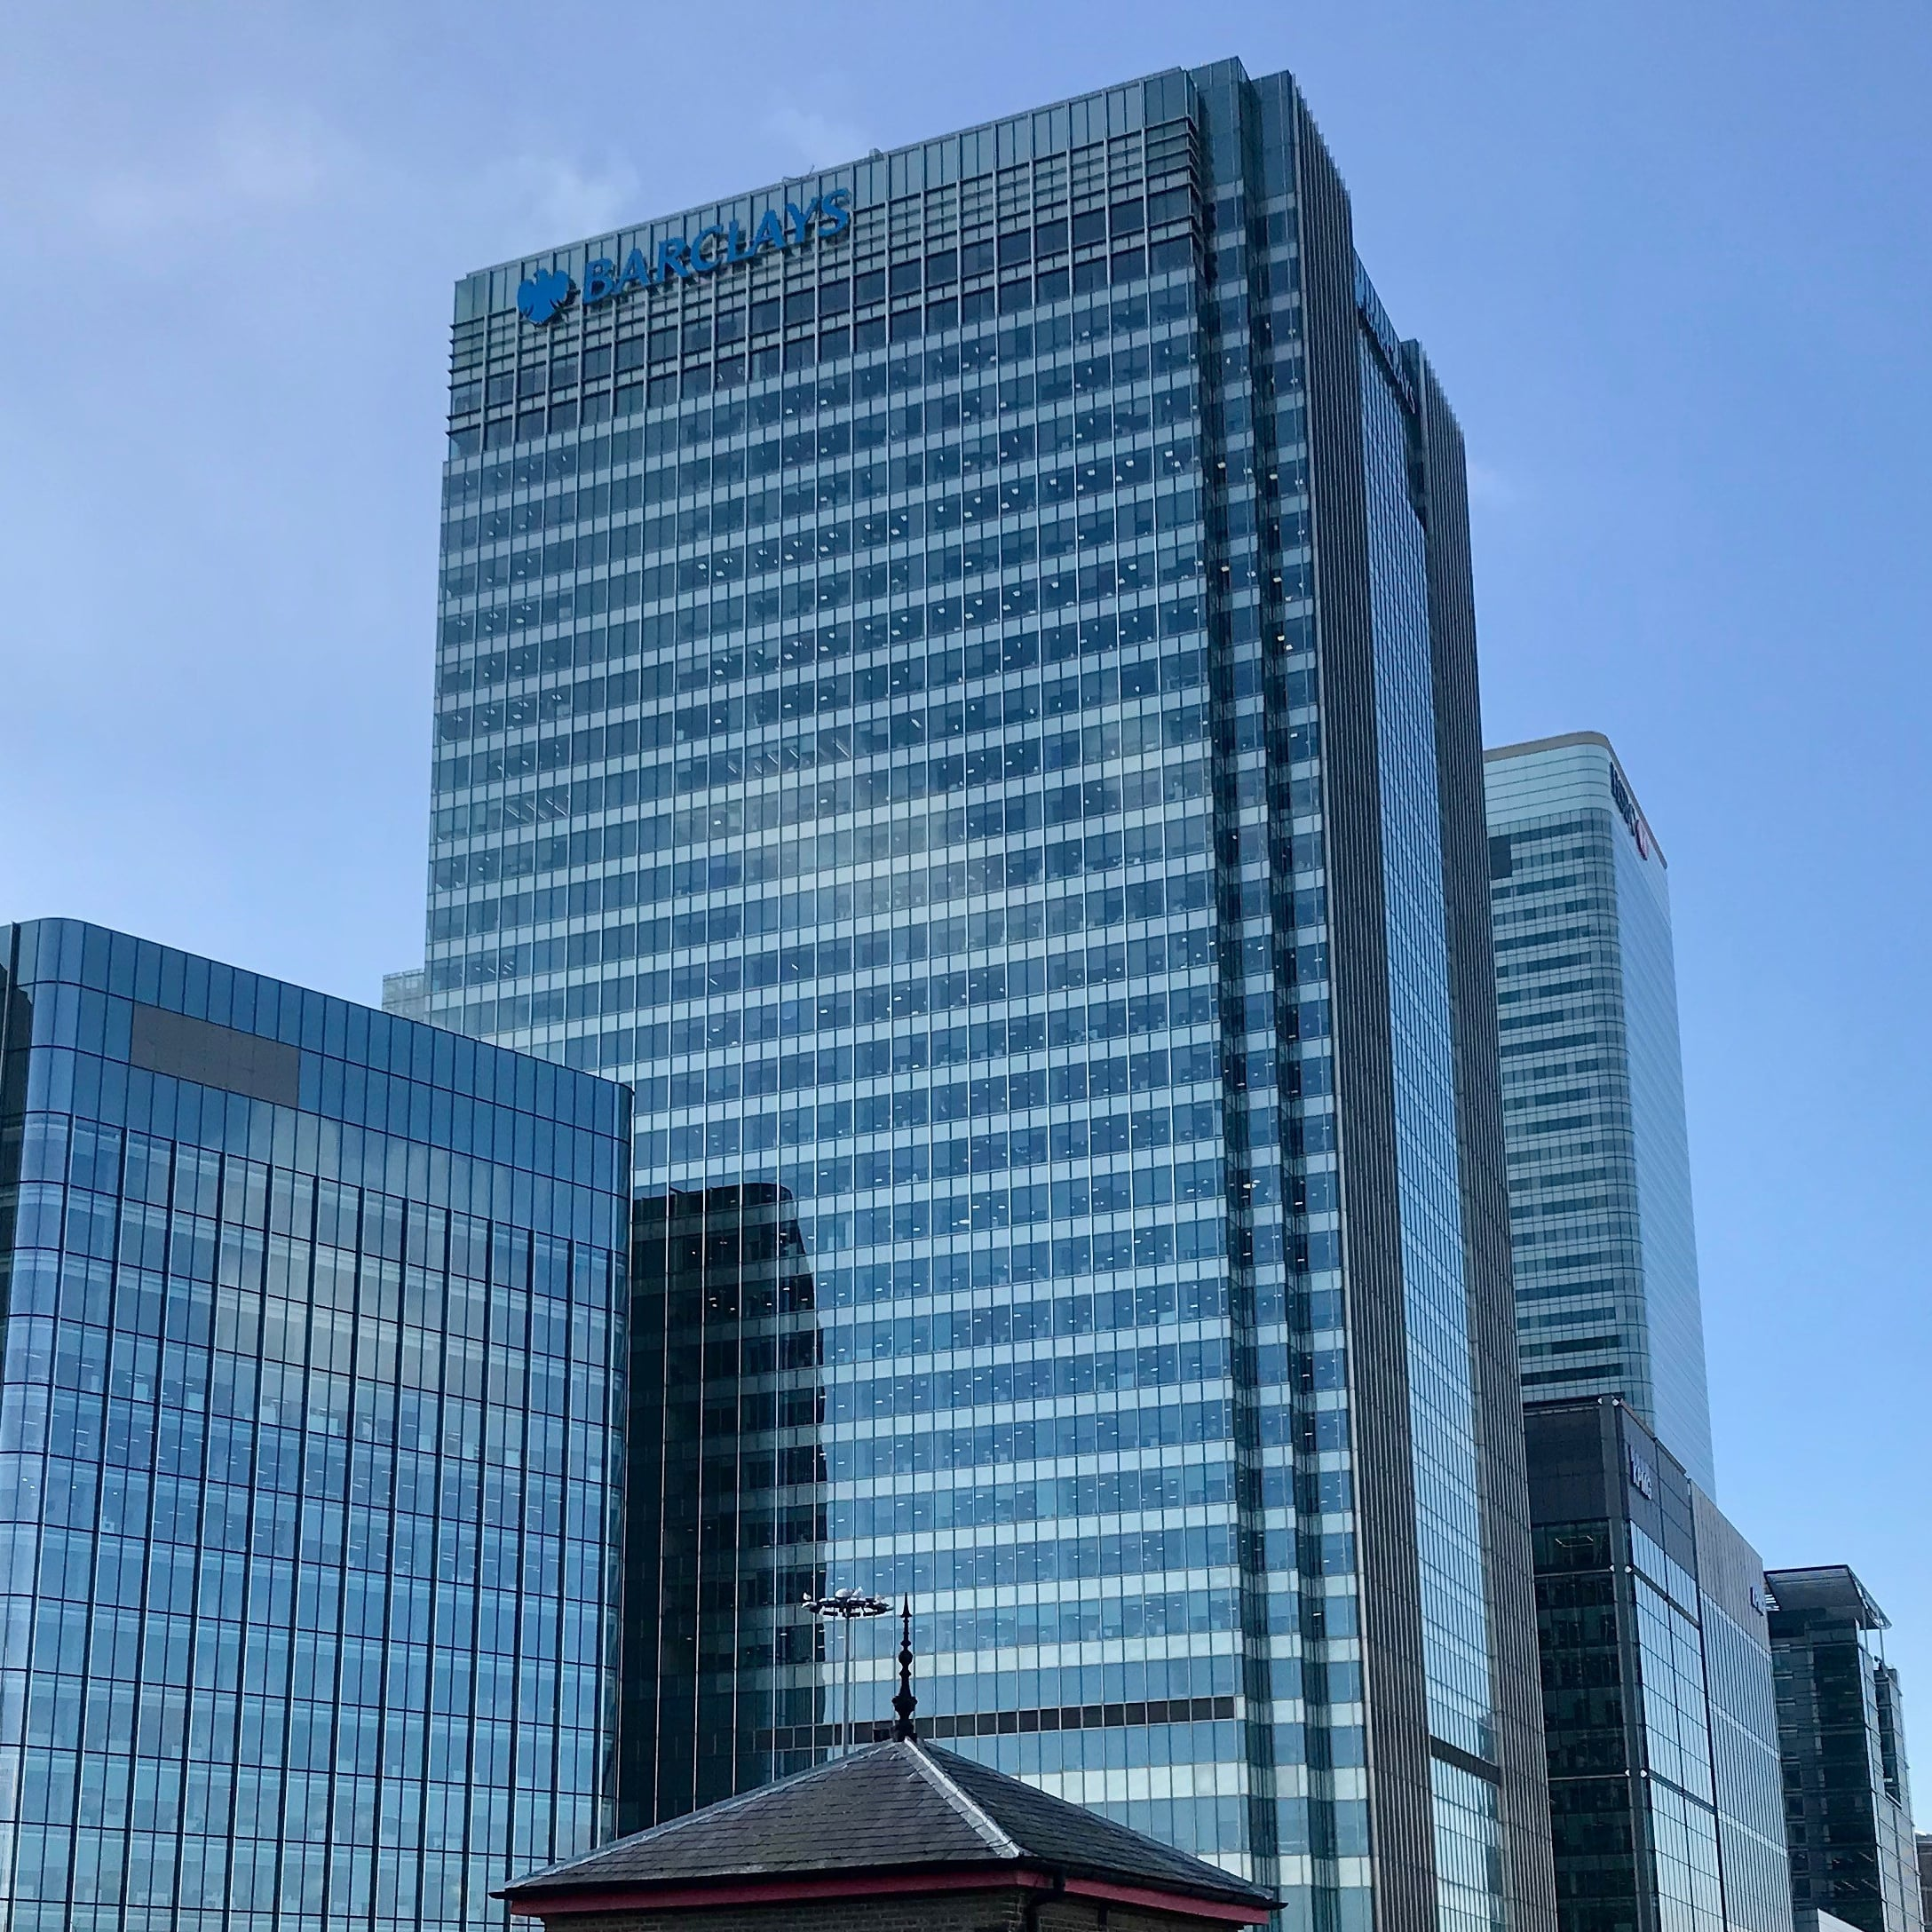 barclays investment bank canary wharf